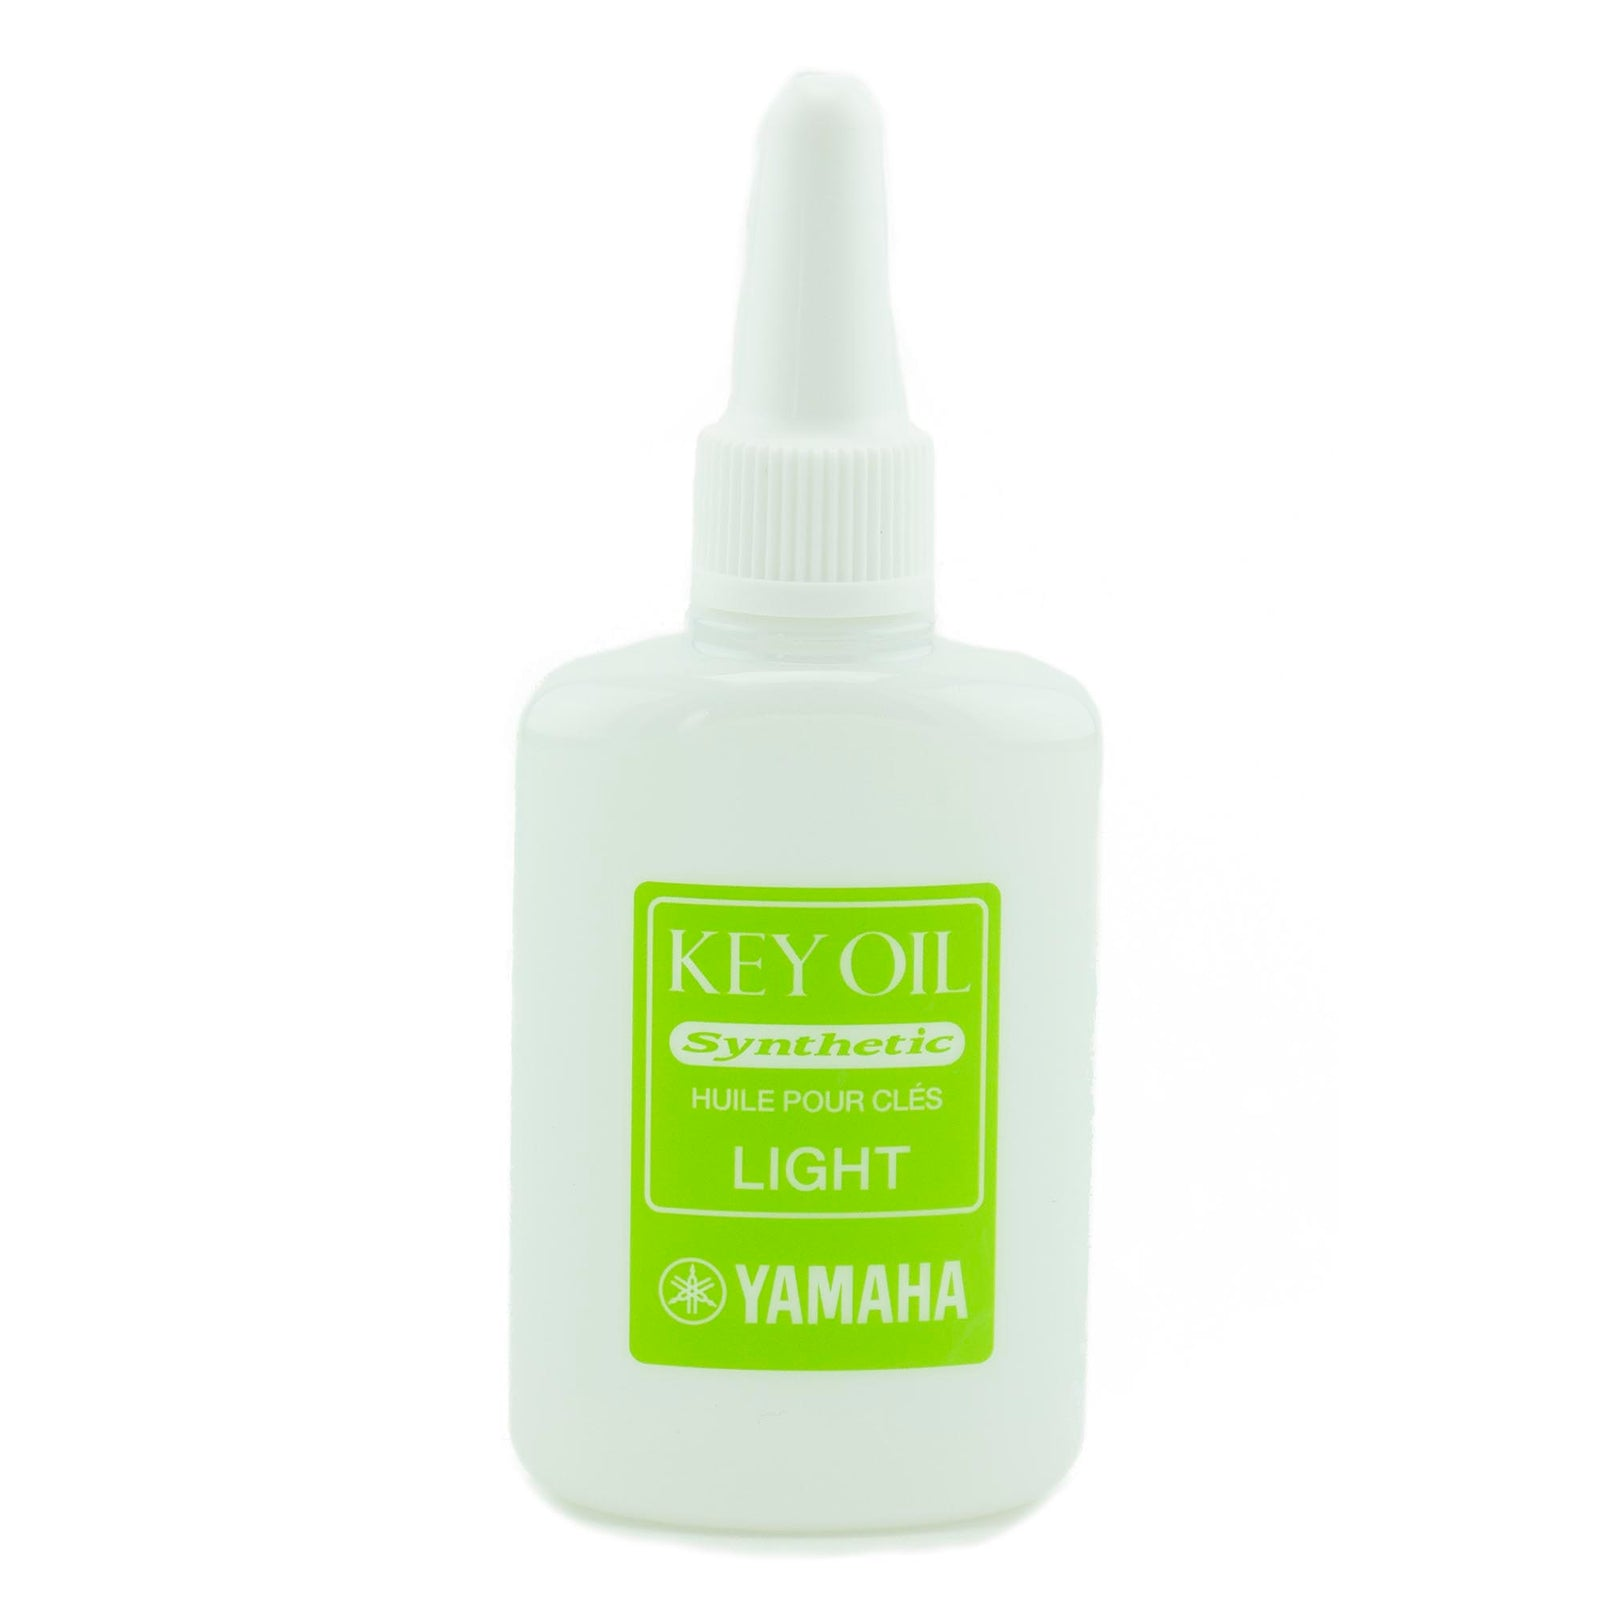 Yamaha Light Synthetic Key Oil 20ml